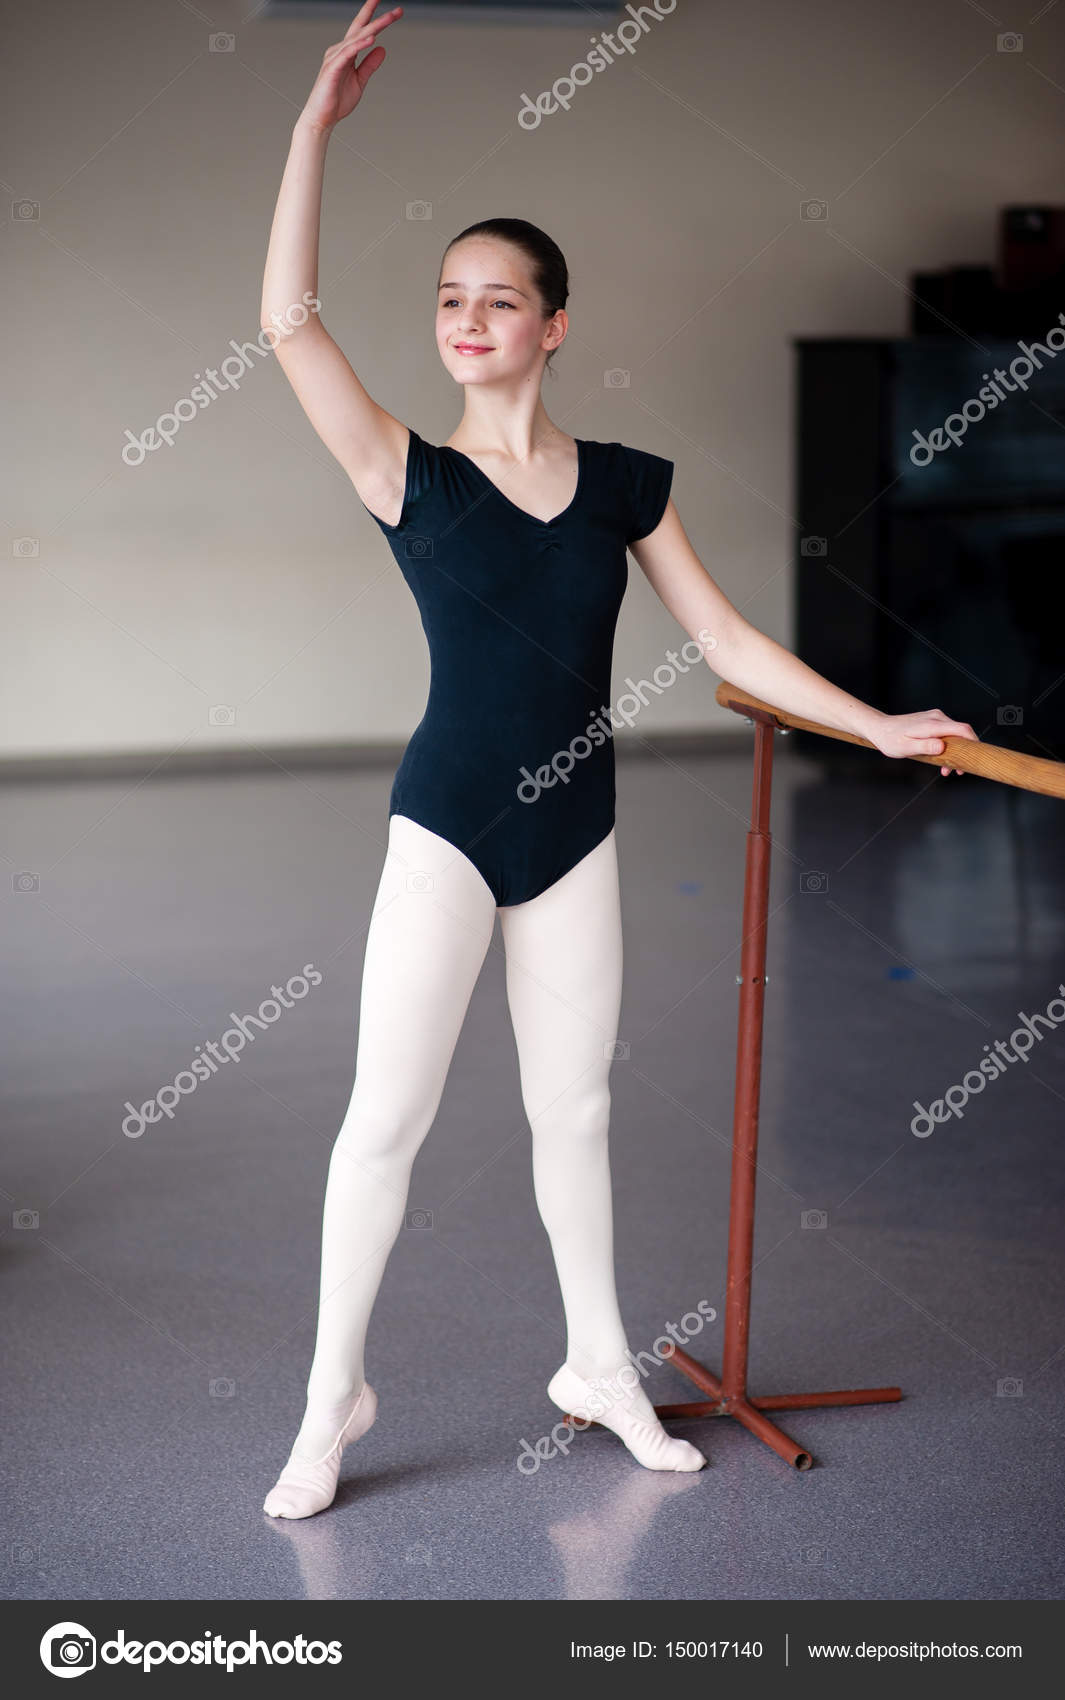 Children are taught ballet positions in choreography